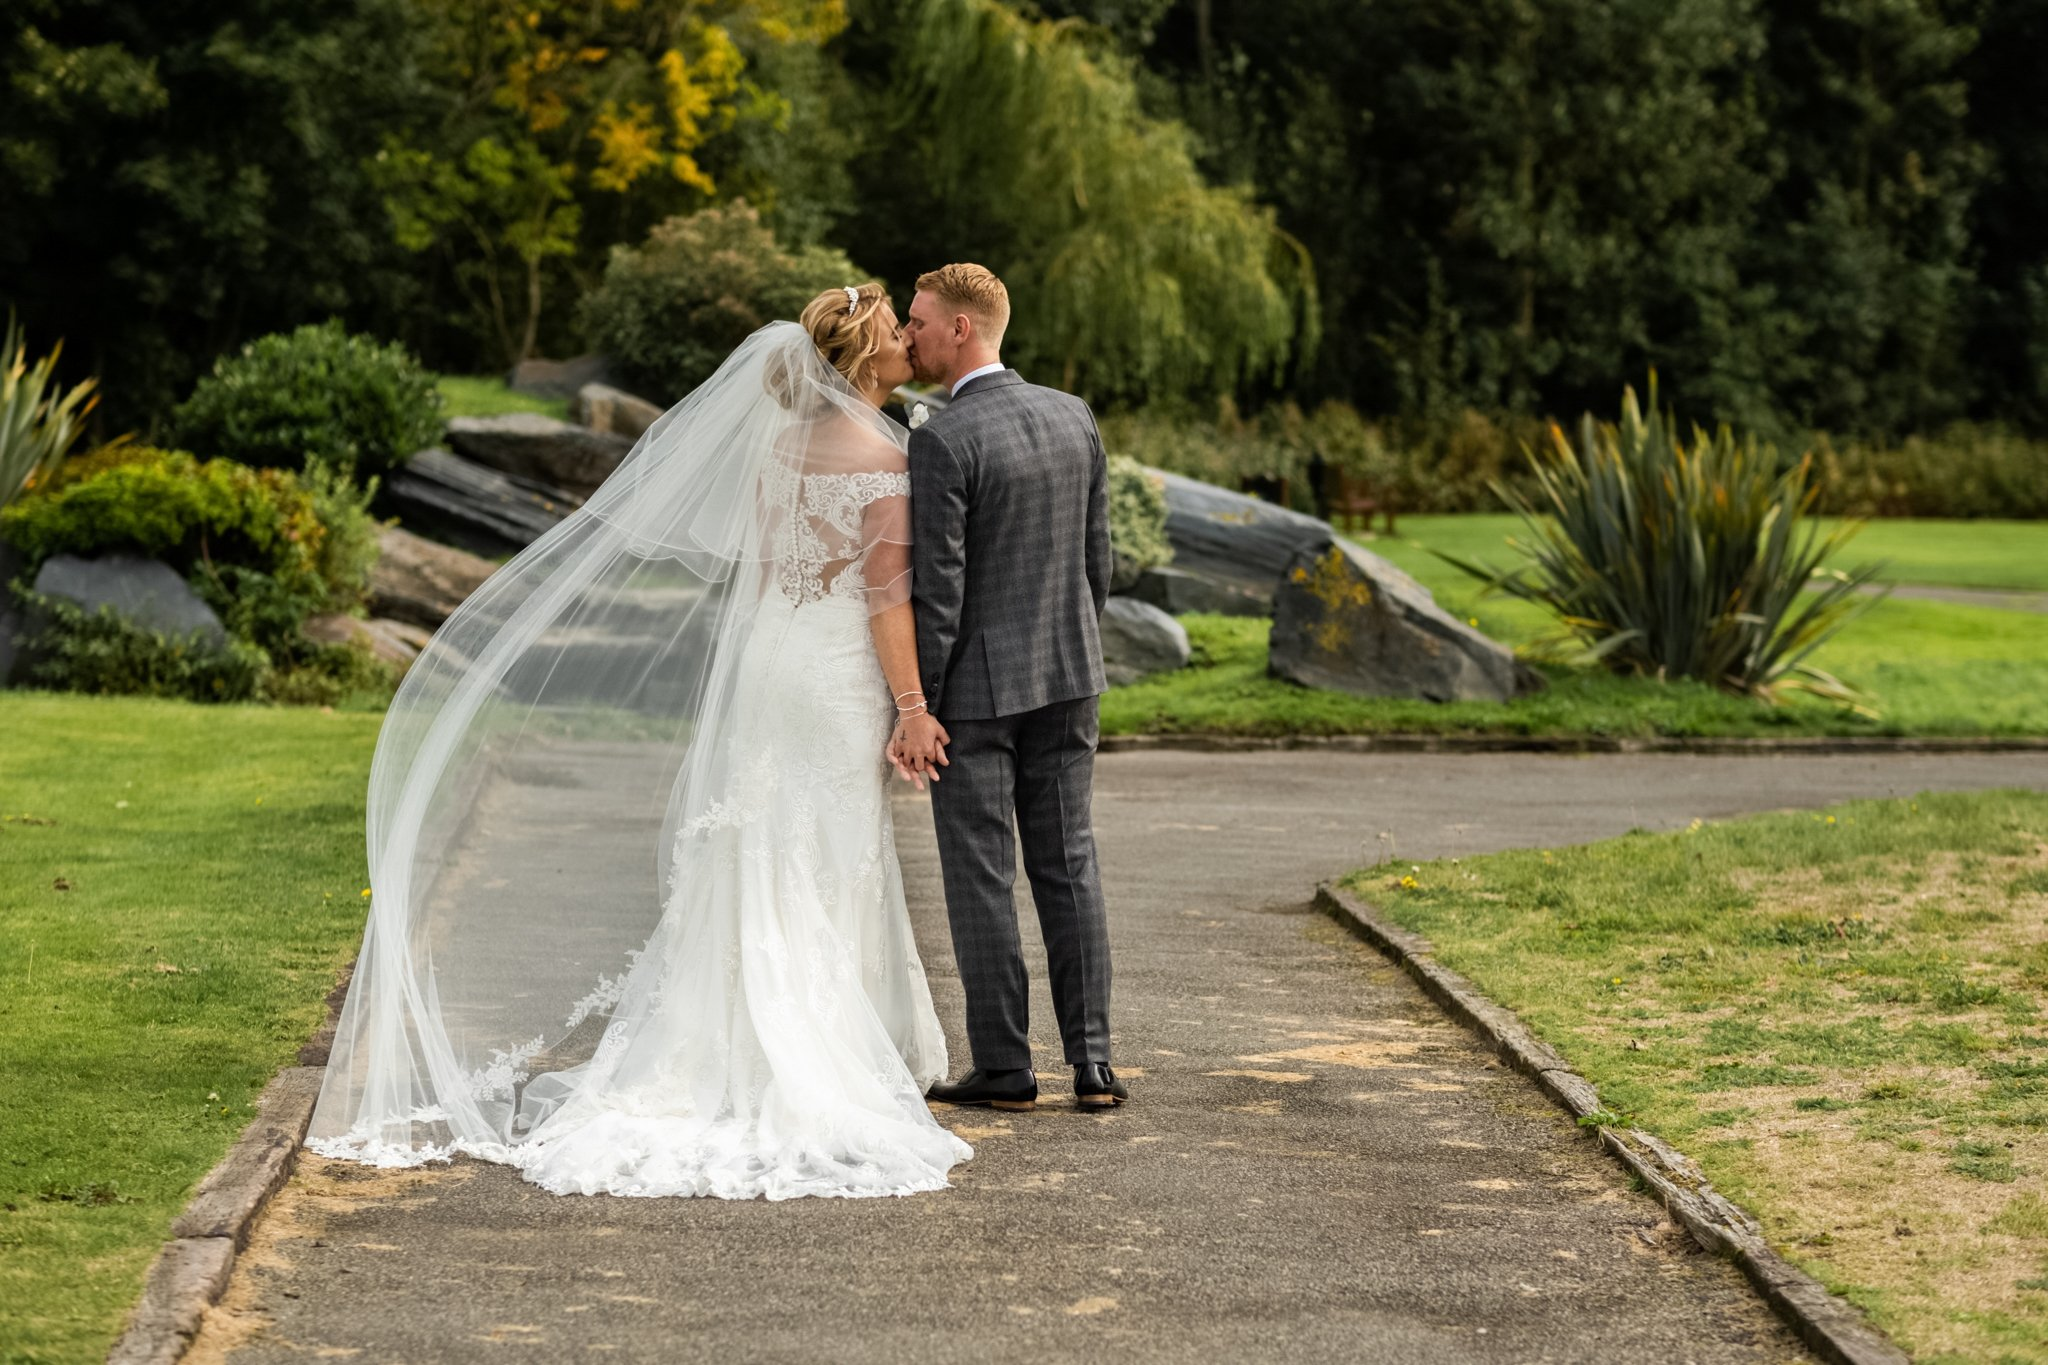 Liverpool-wedding-photographer-561